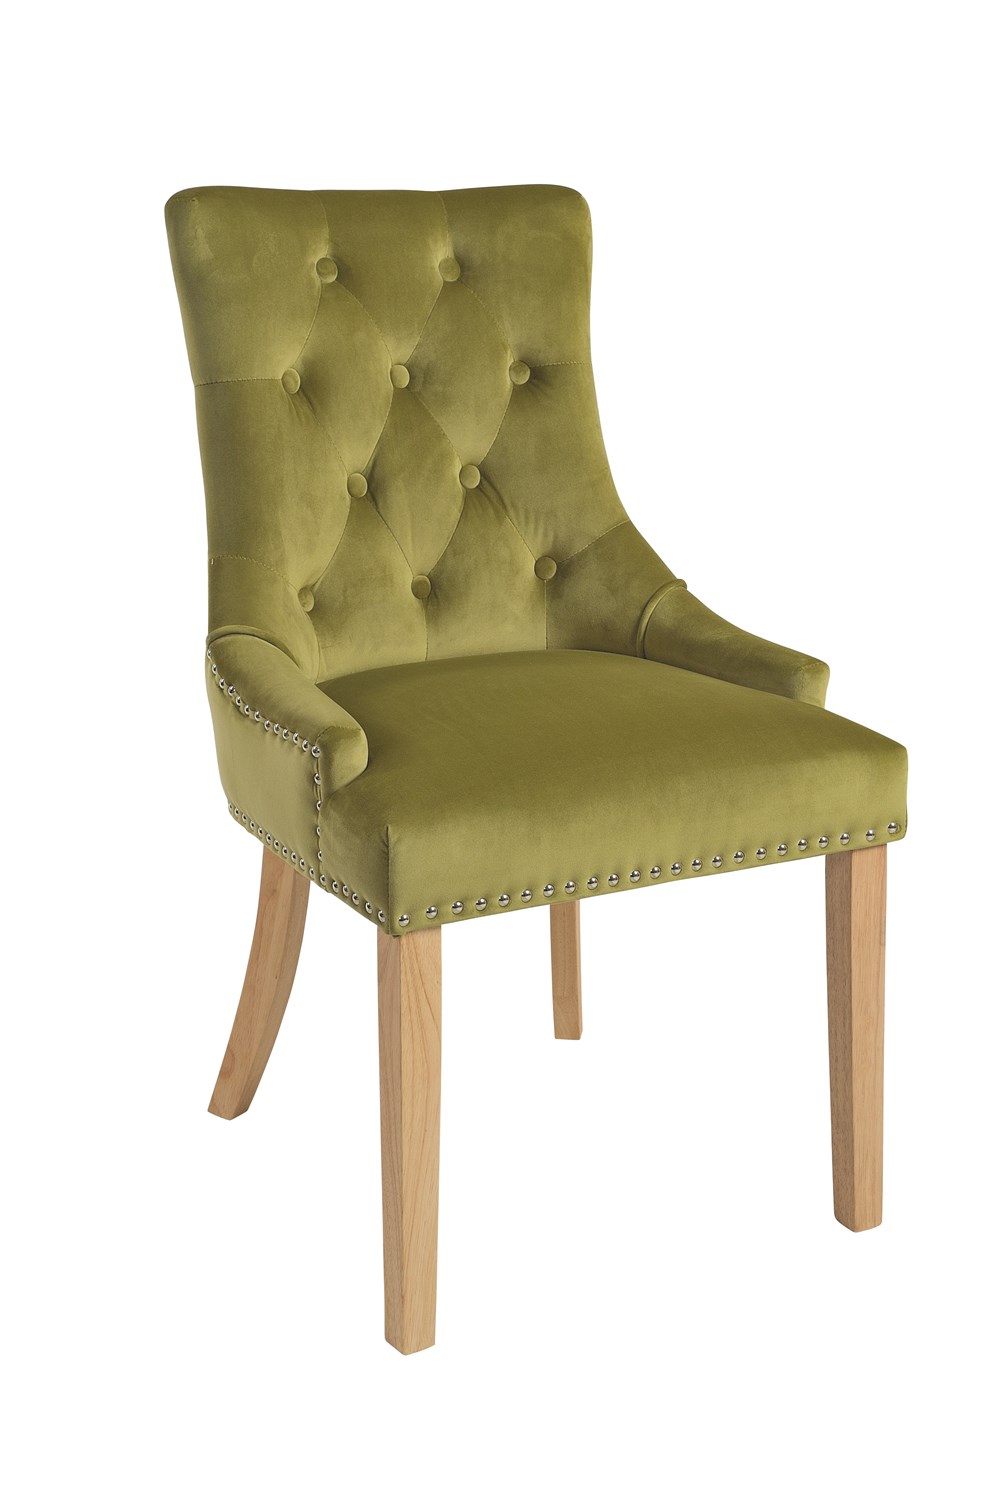 VICKY CHAIR Golden Lime Upholstered Chair with Natural Legs